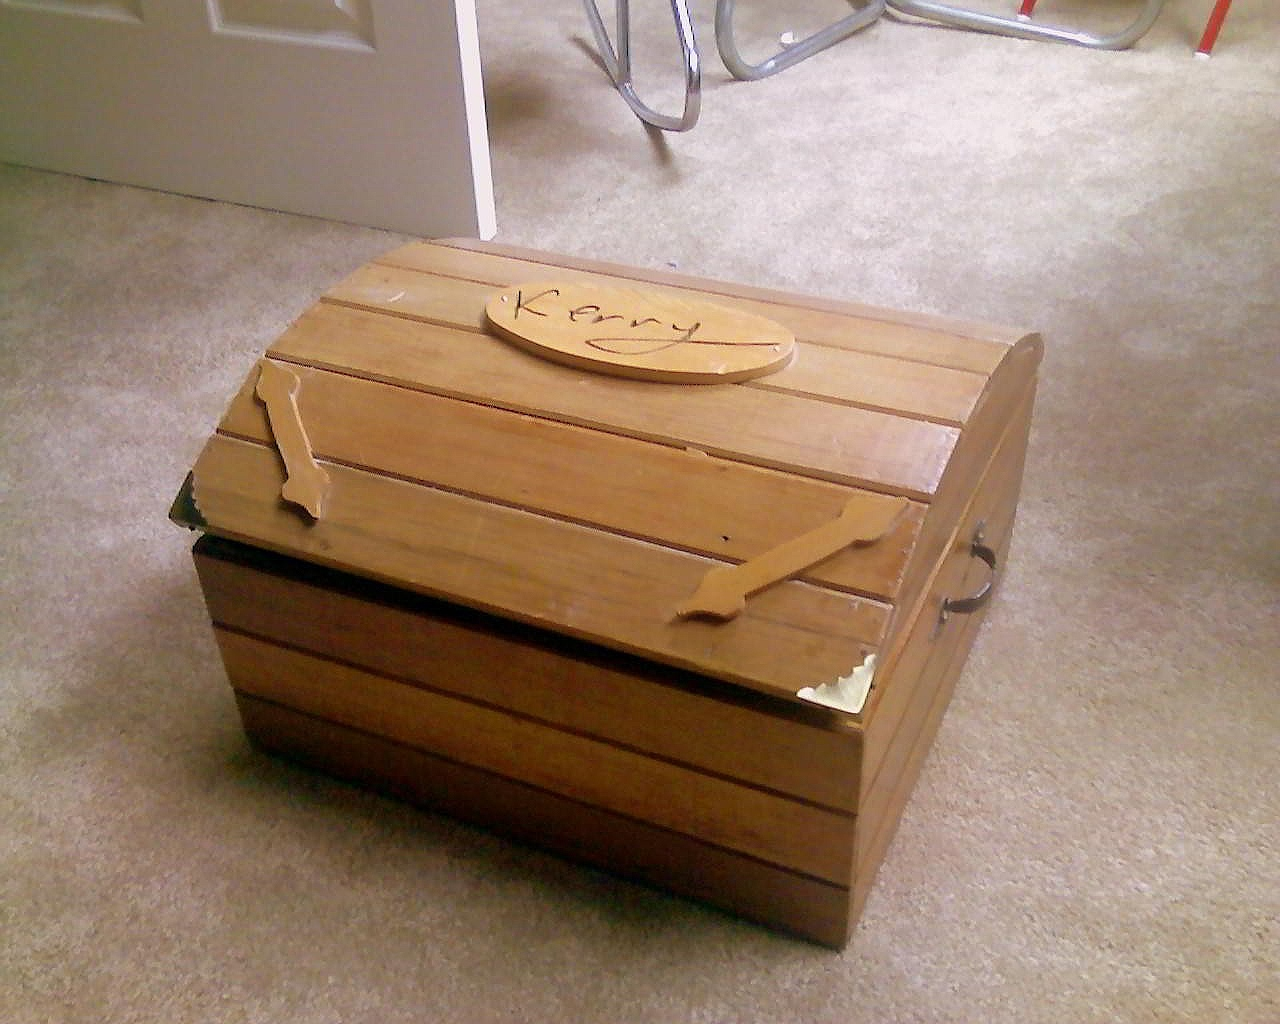 A memory box made of tan colored wood to hold memoirs of the deceased.